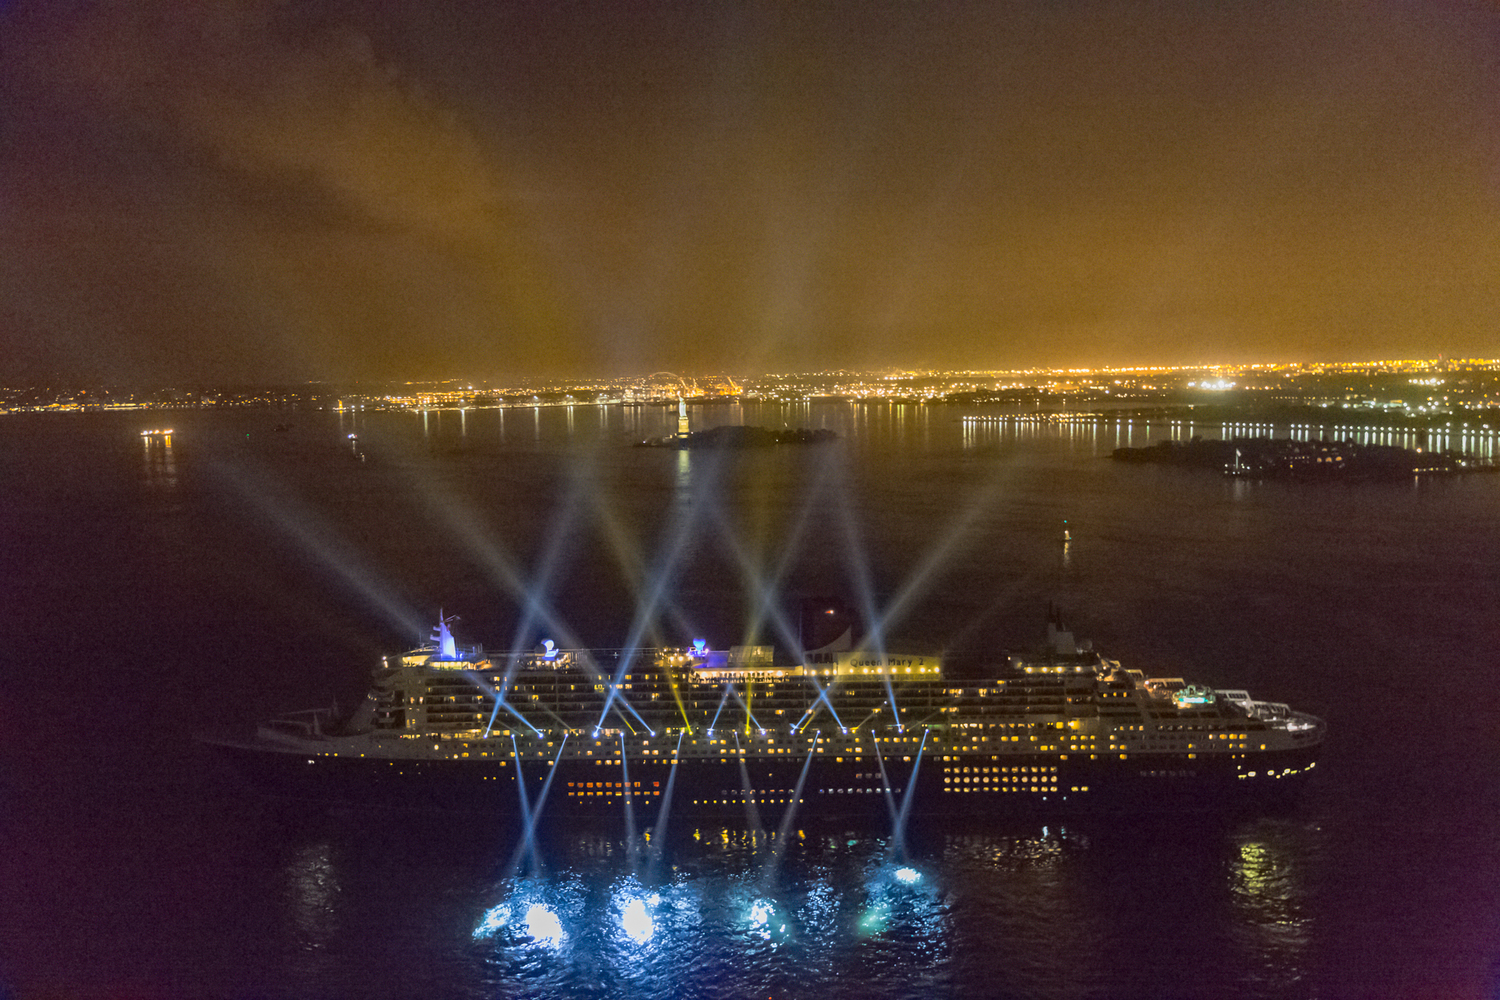 Forever Cunard Nighttime Spectacular on Queen Mary 2 in New York Harbor